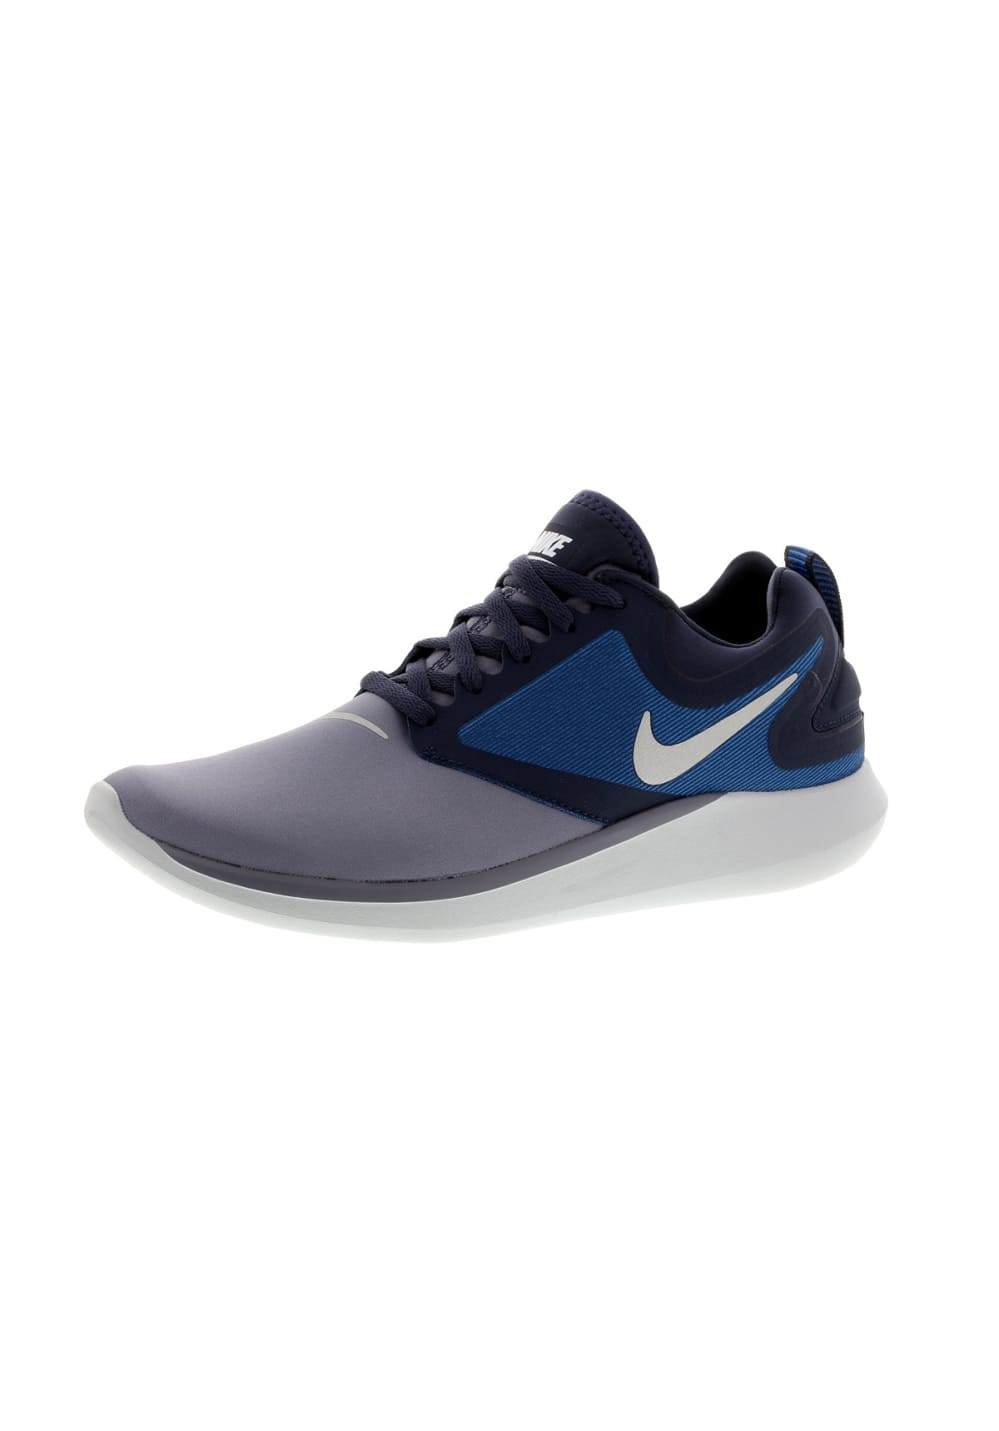 7d6abc209c5a Next. -60%. This product is currently out of stock. Nike. LunarSolo GS -  Running shoes